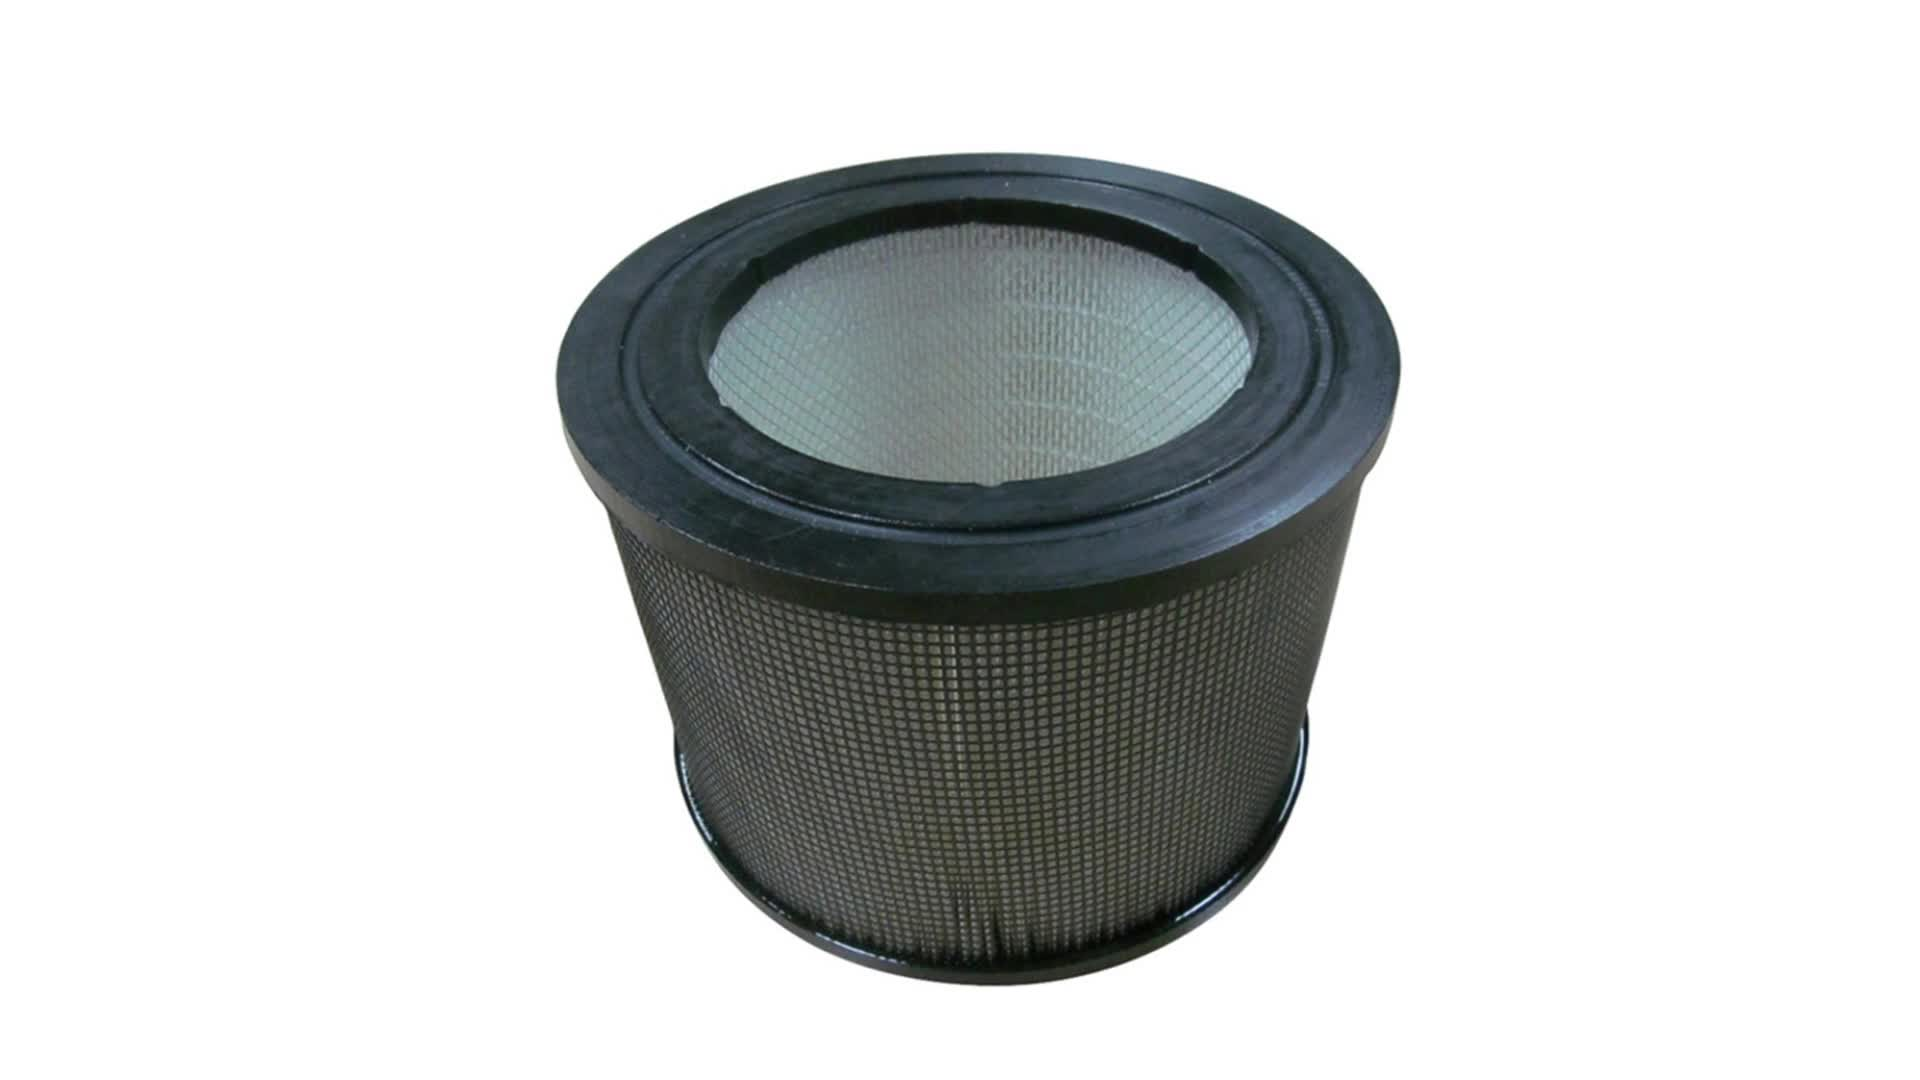 H13 Cartridge Hepa Air Filter Replacement for Filter Queen Defender 4000 Air Purifier Parts